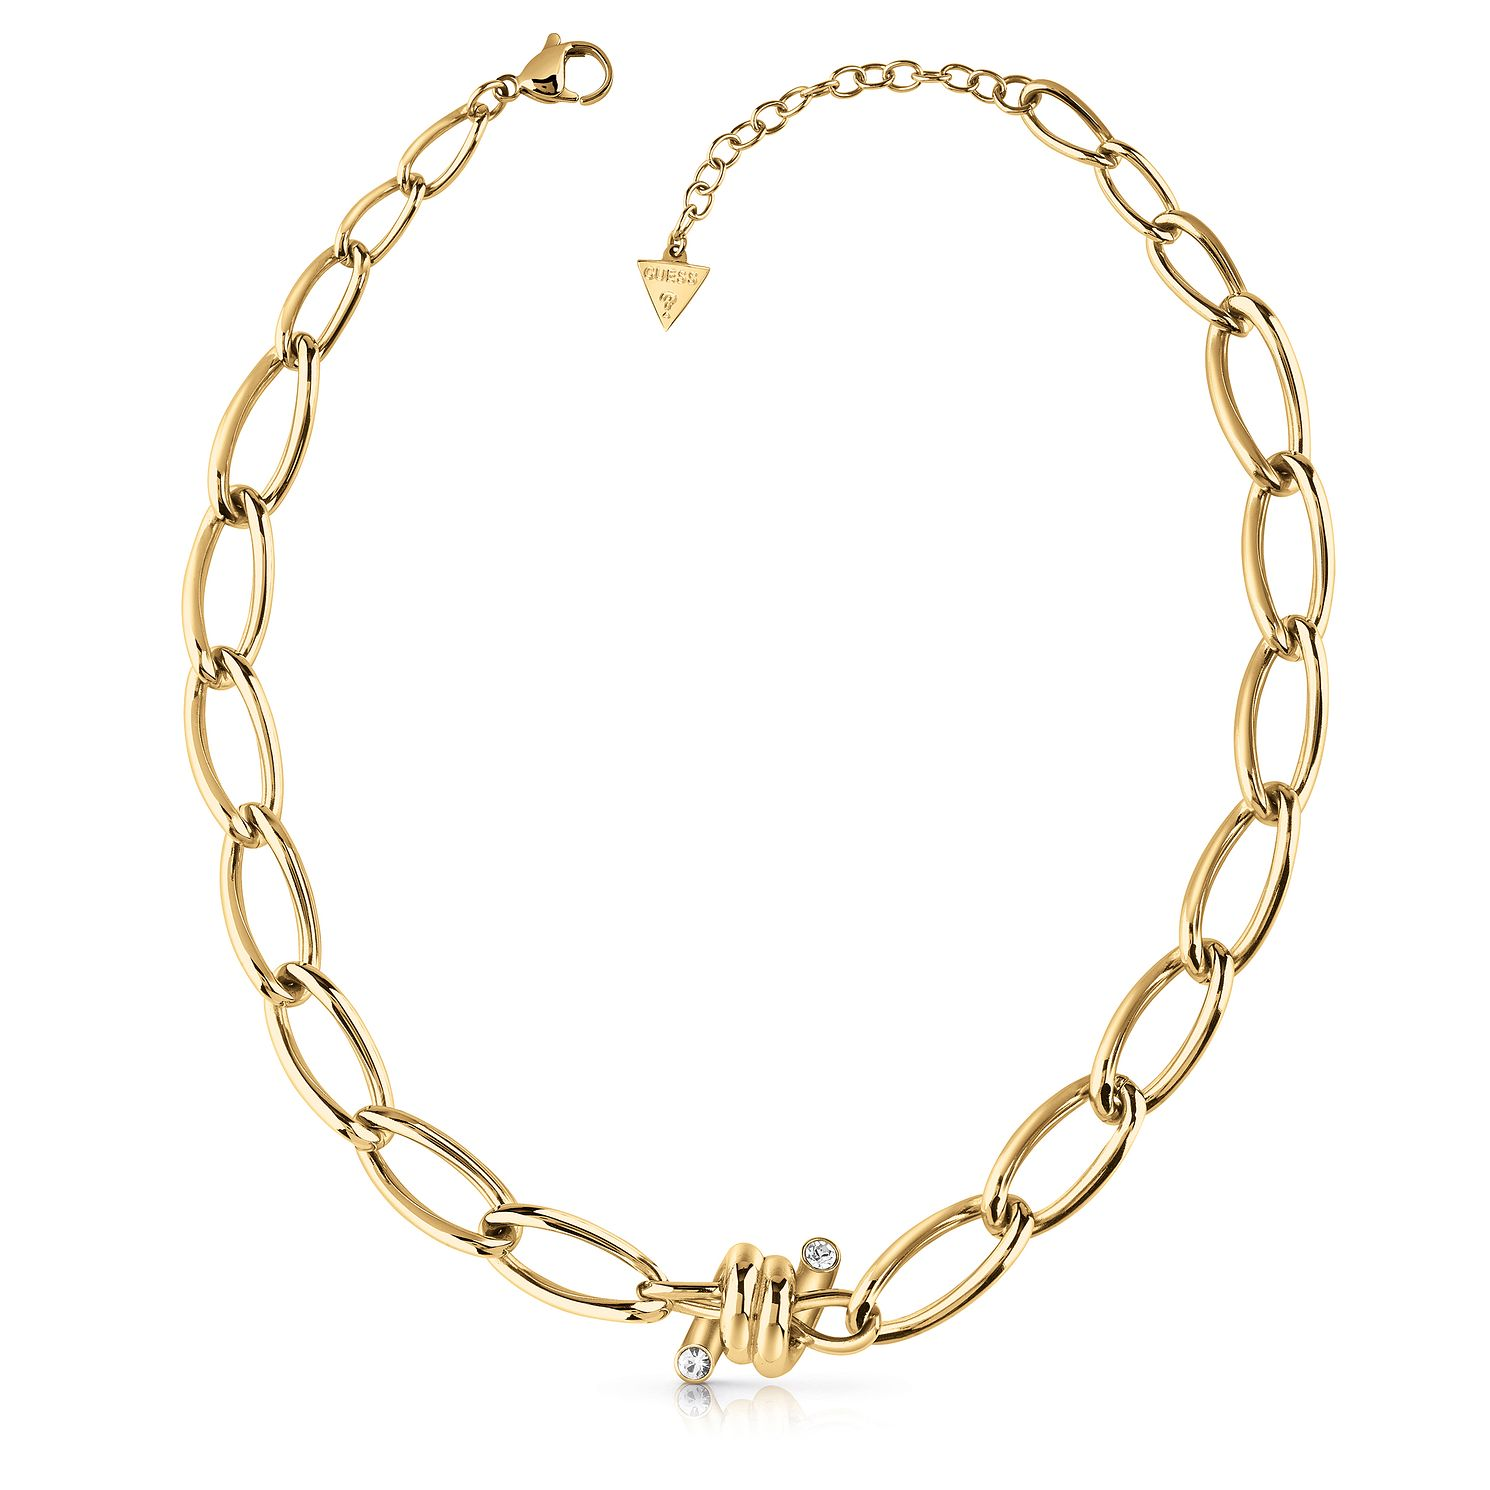 Guess Gold Tone Swarovski Crystal Twist Necklace - Product number 5922291